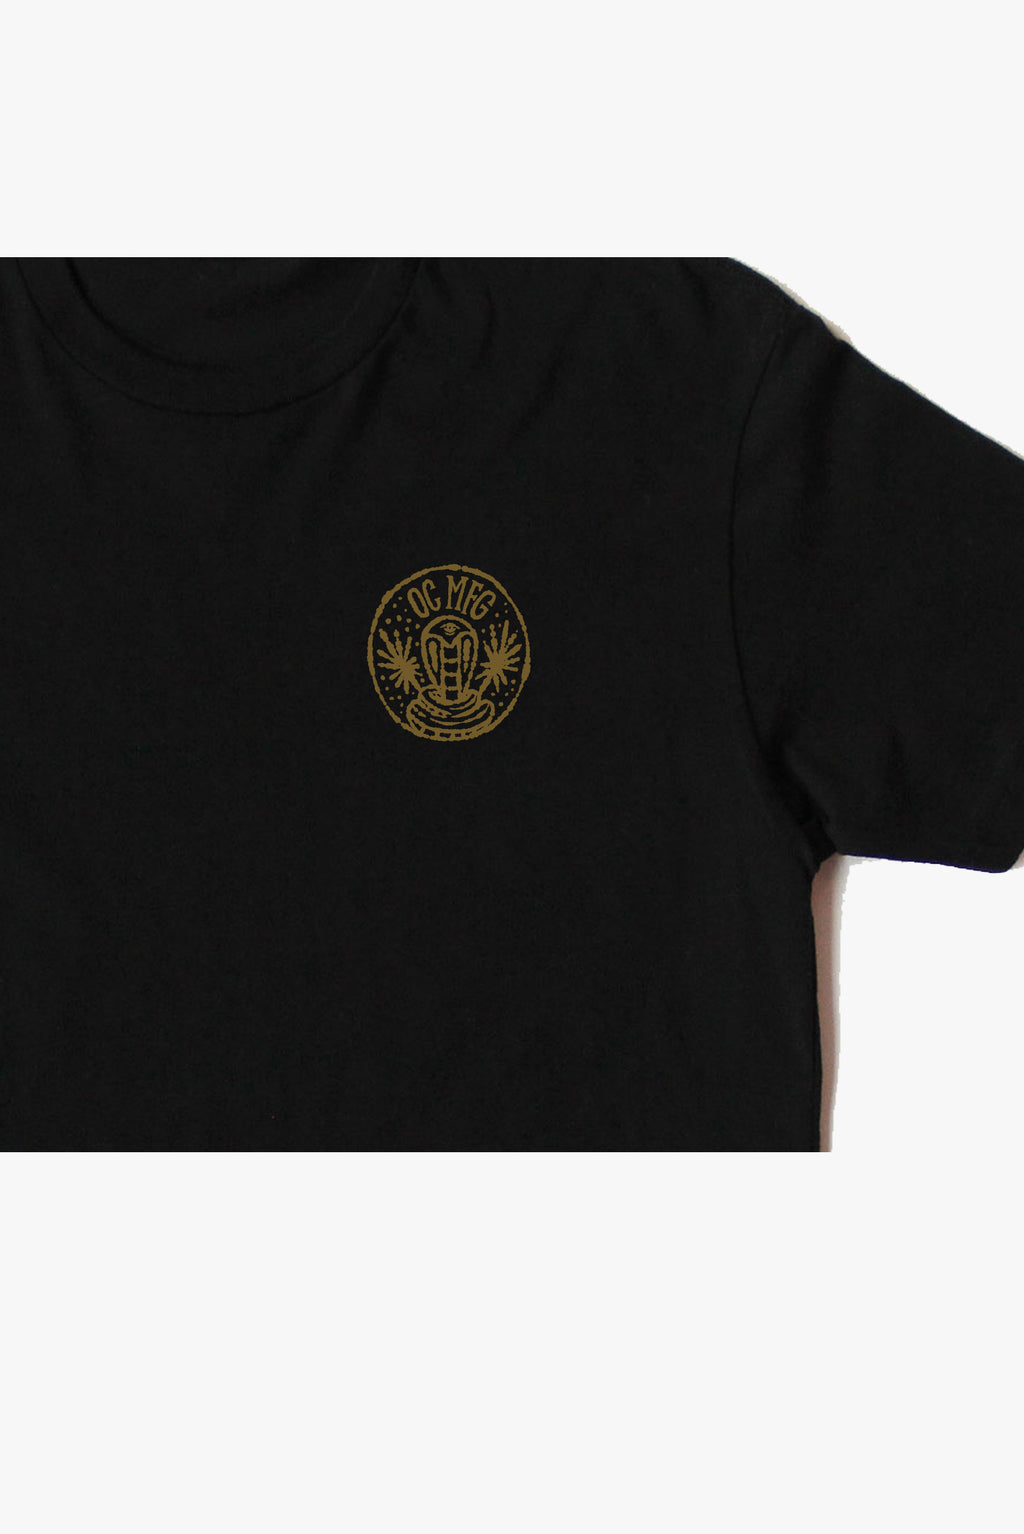 THE WHISPERER T-SHIRT BLACK